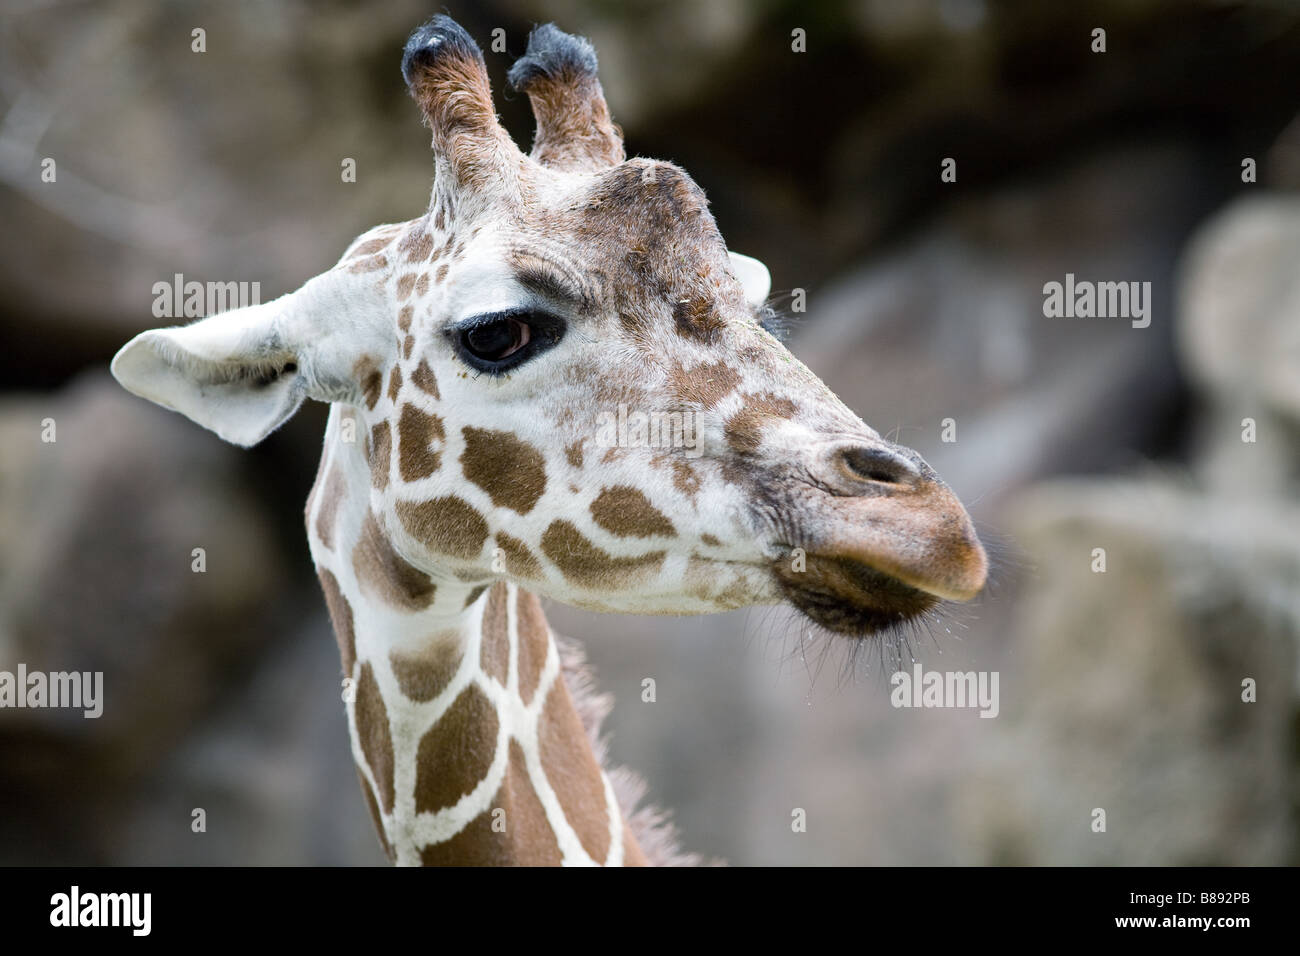 Portrait of a giraffe - Stock Image